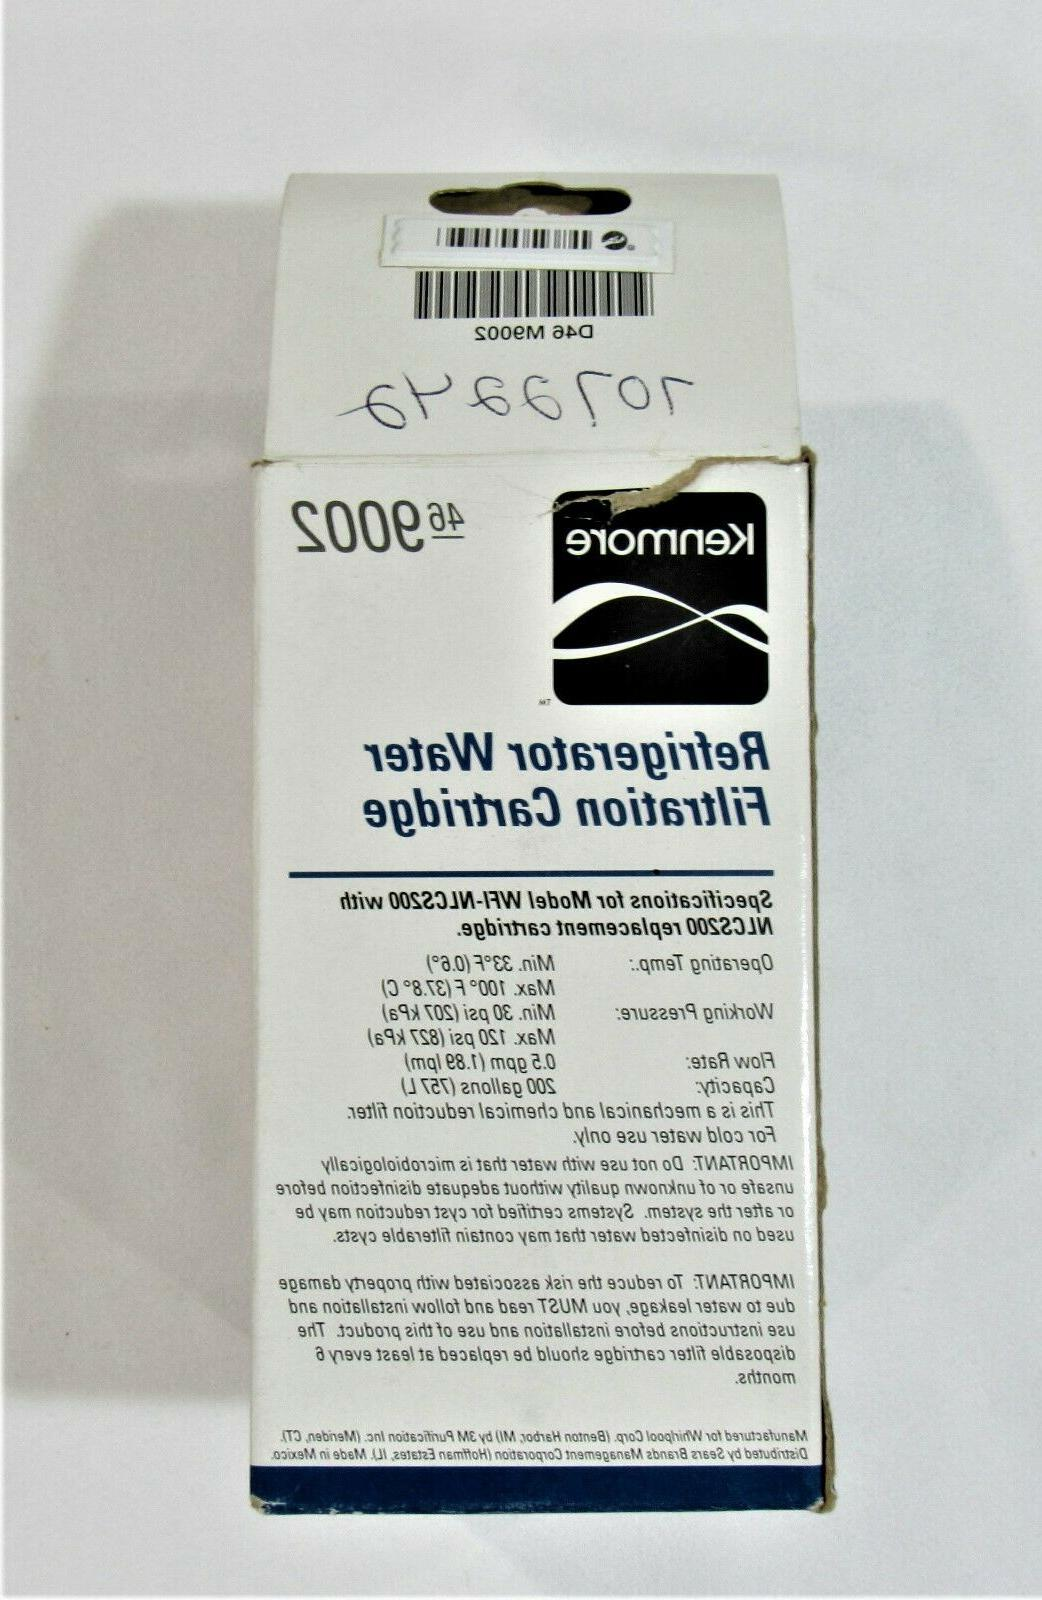 New Kenmore Refrigerator Water Filter w/Docs